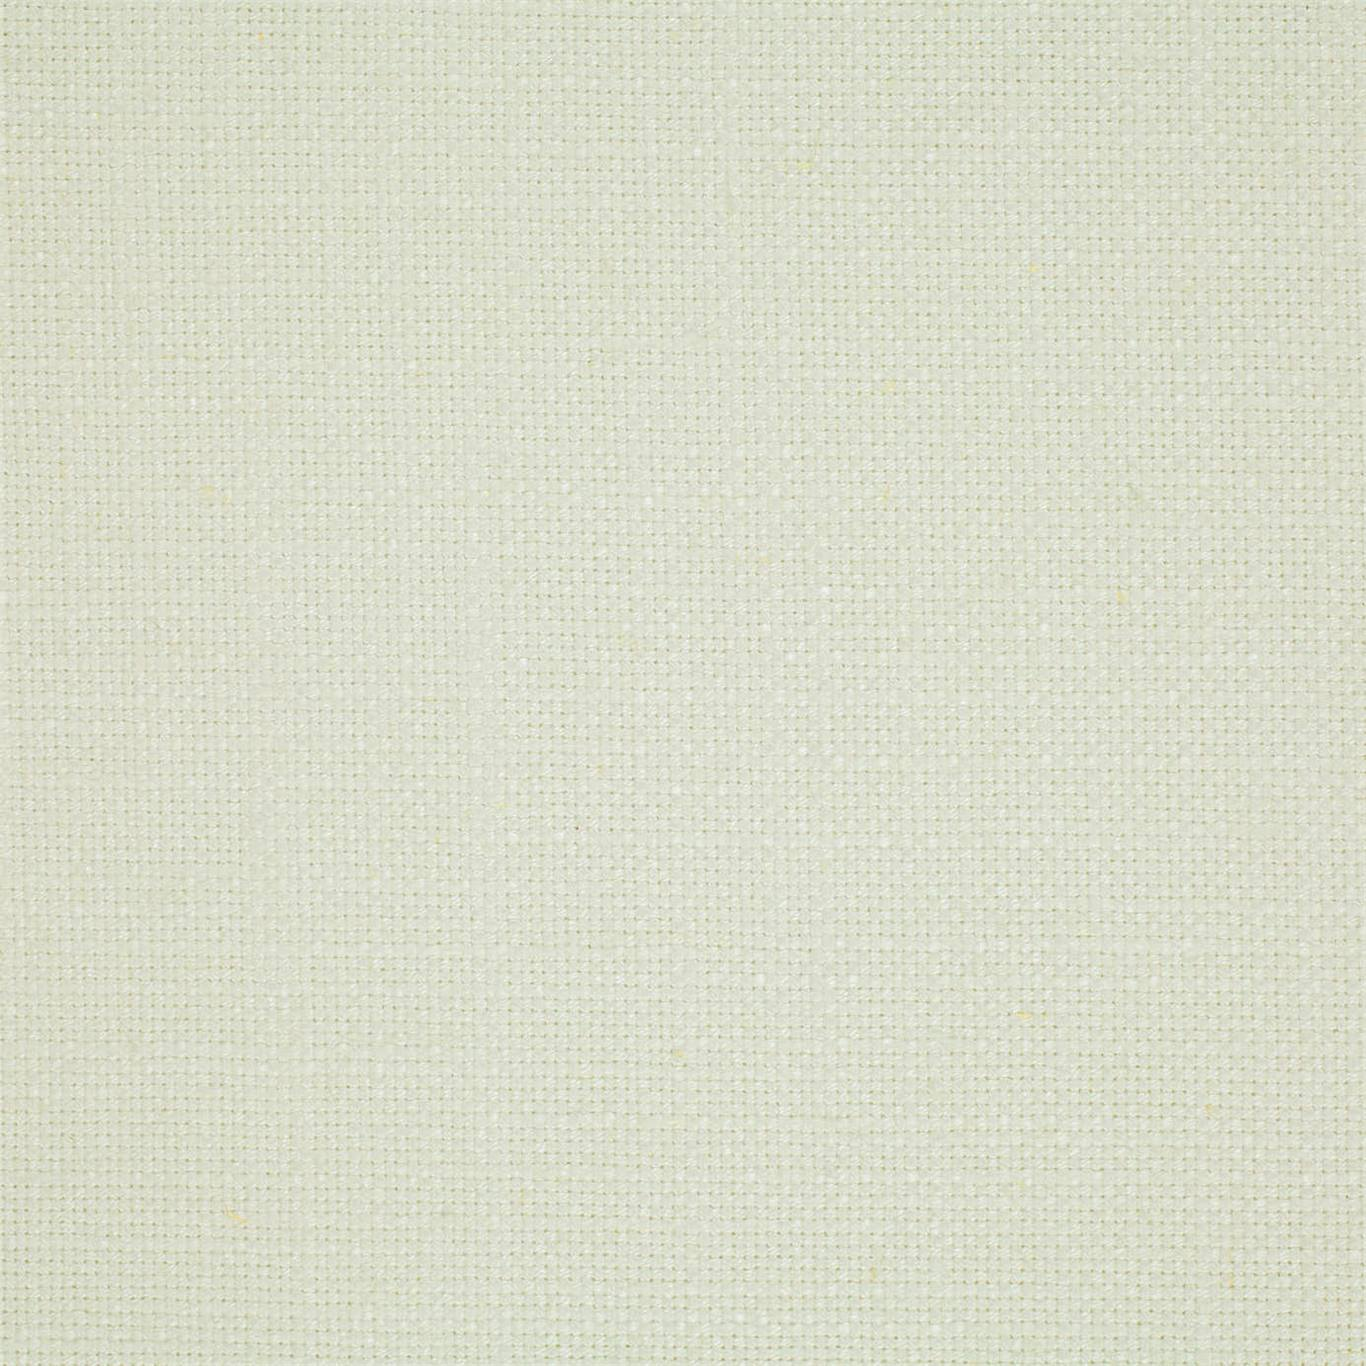 DTUC237118 Collection - Tuscany II Weaves Fabric